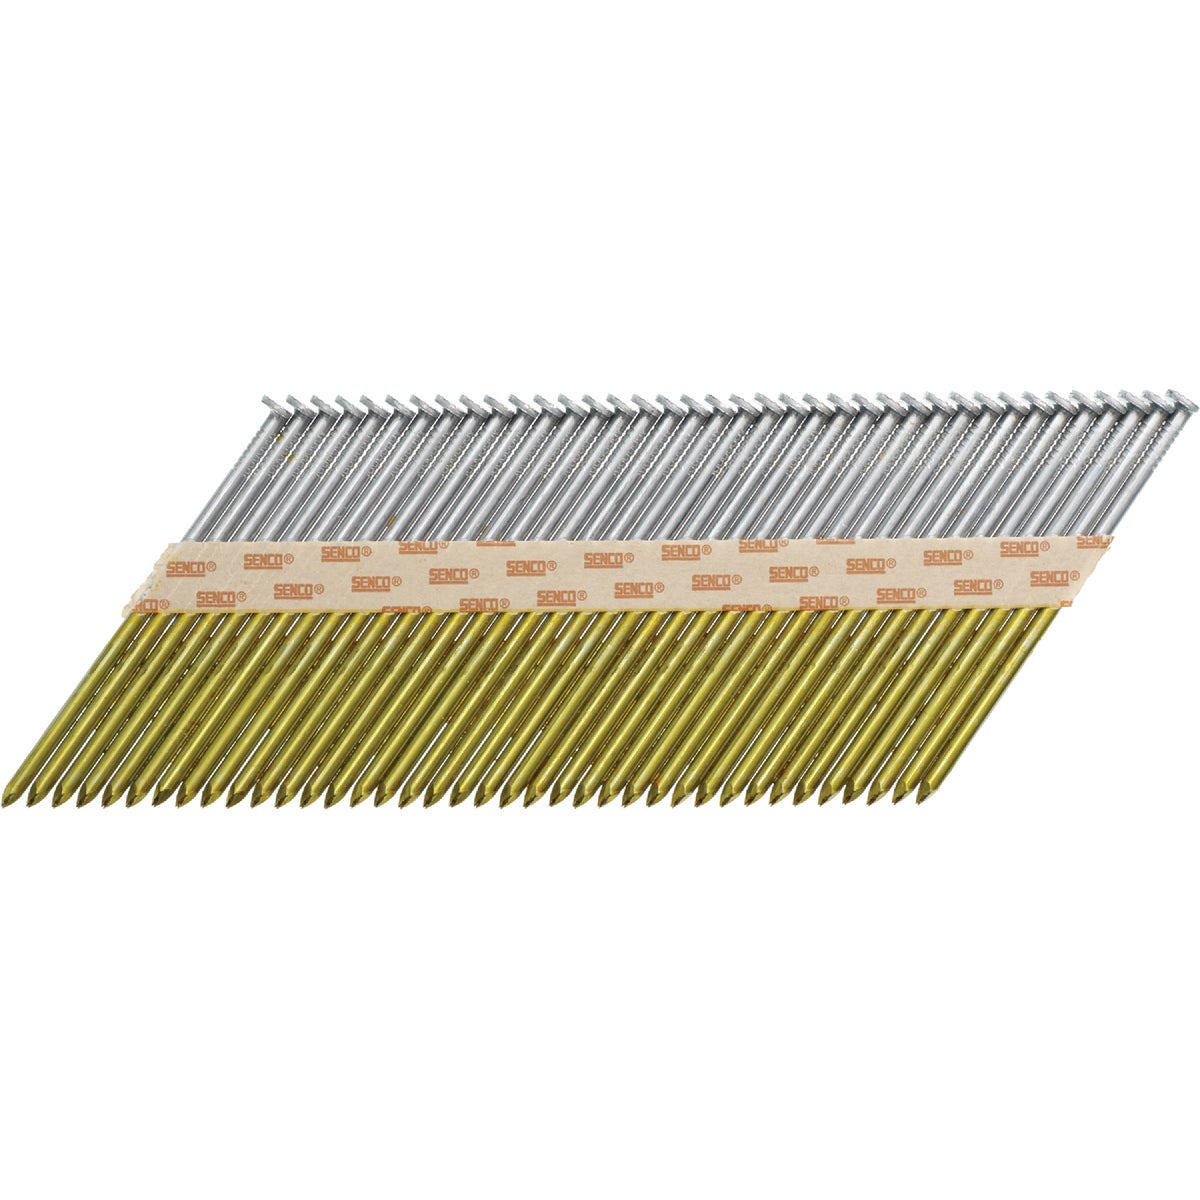 "3-1/4"" FRAMING NAIL - KC28ASBX by Senco Brands"